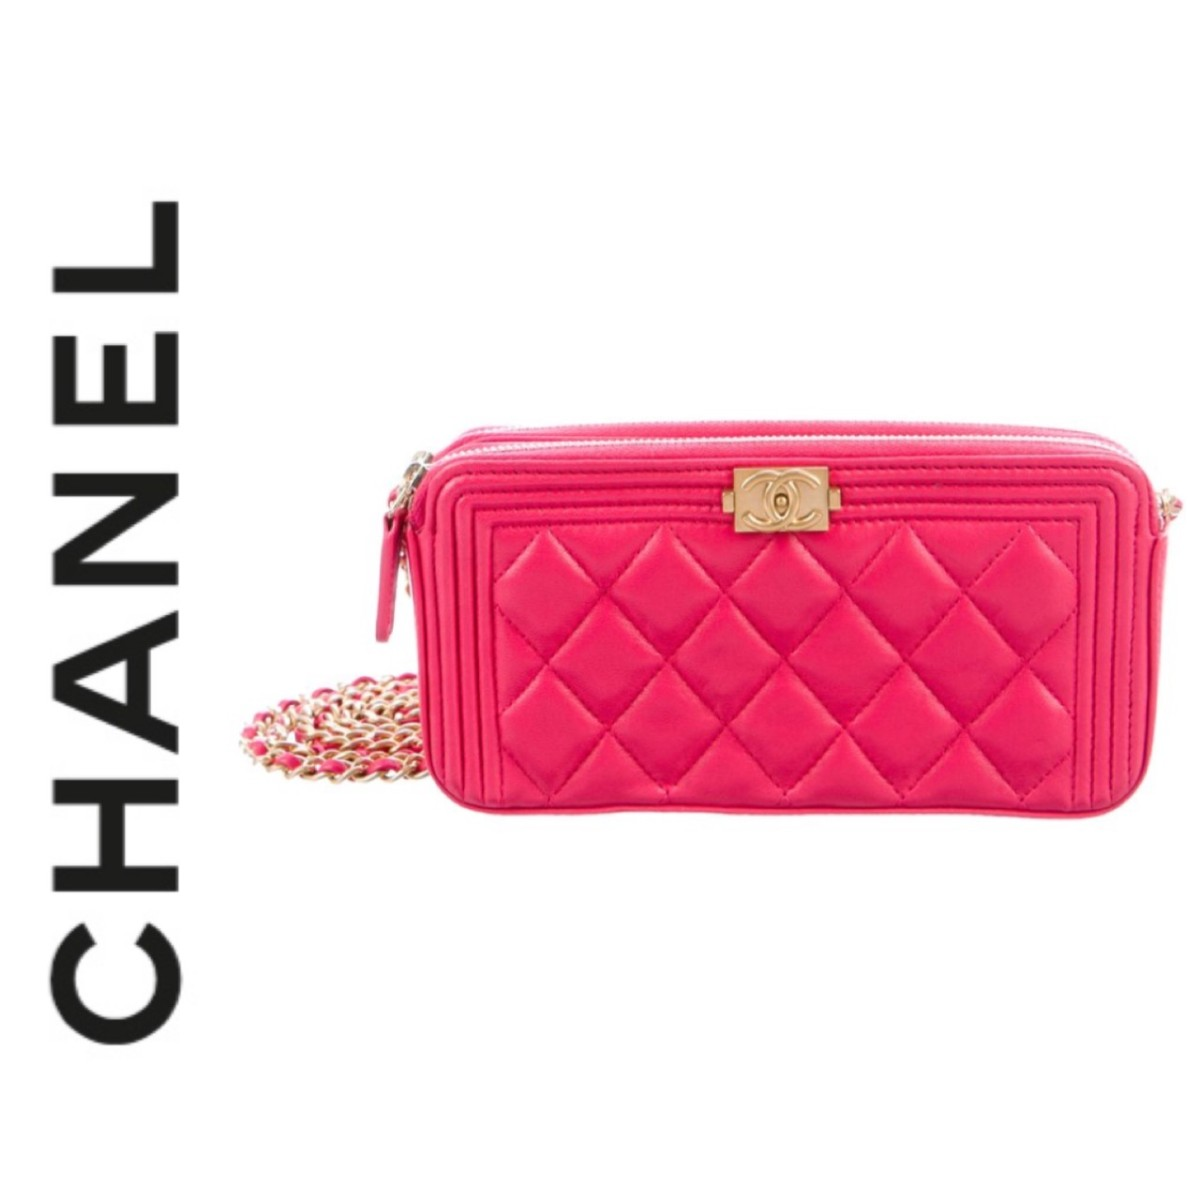 Chanel Pink Chanel Boy Clutch With Chain Designer Dress